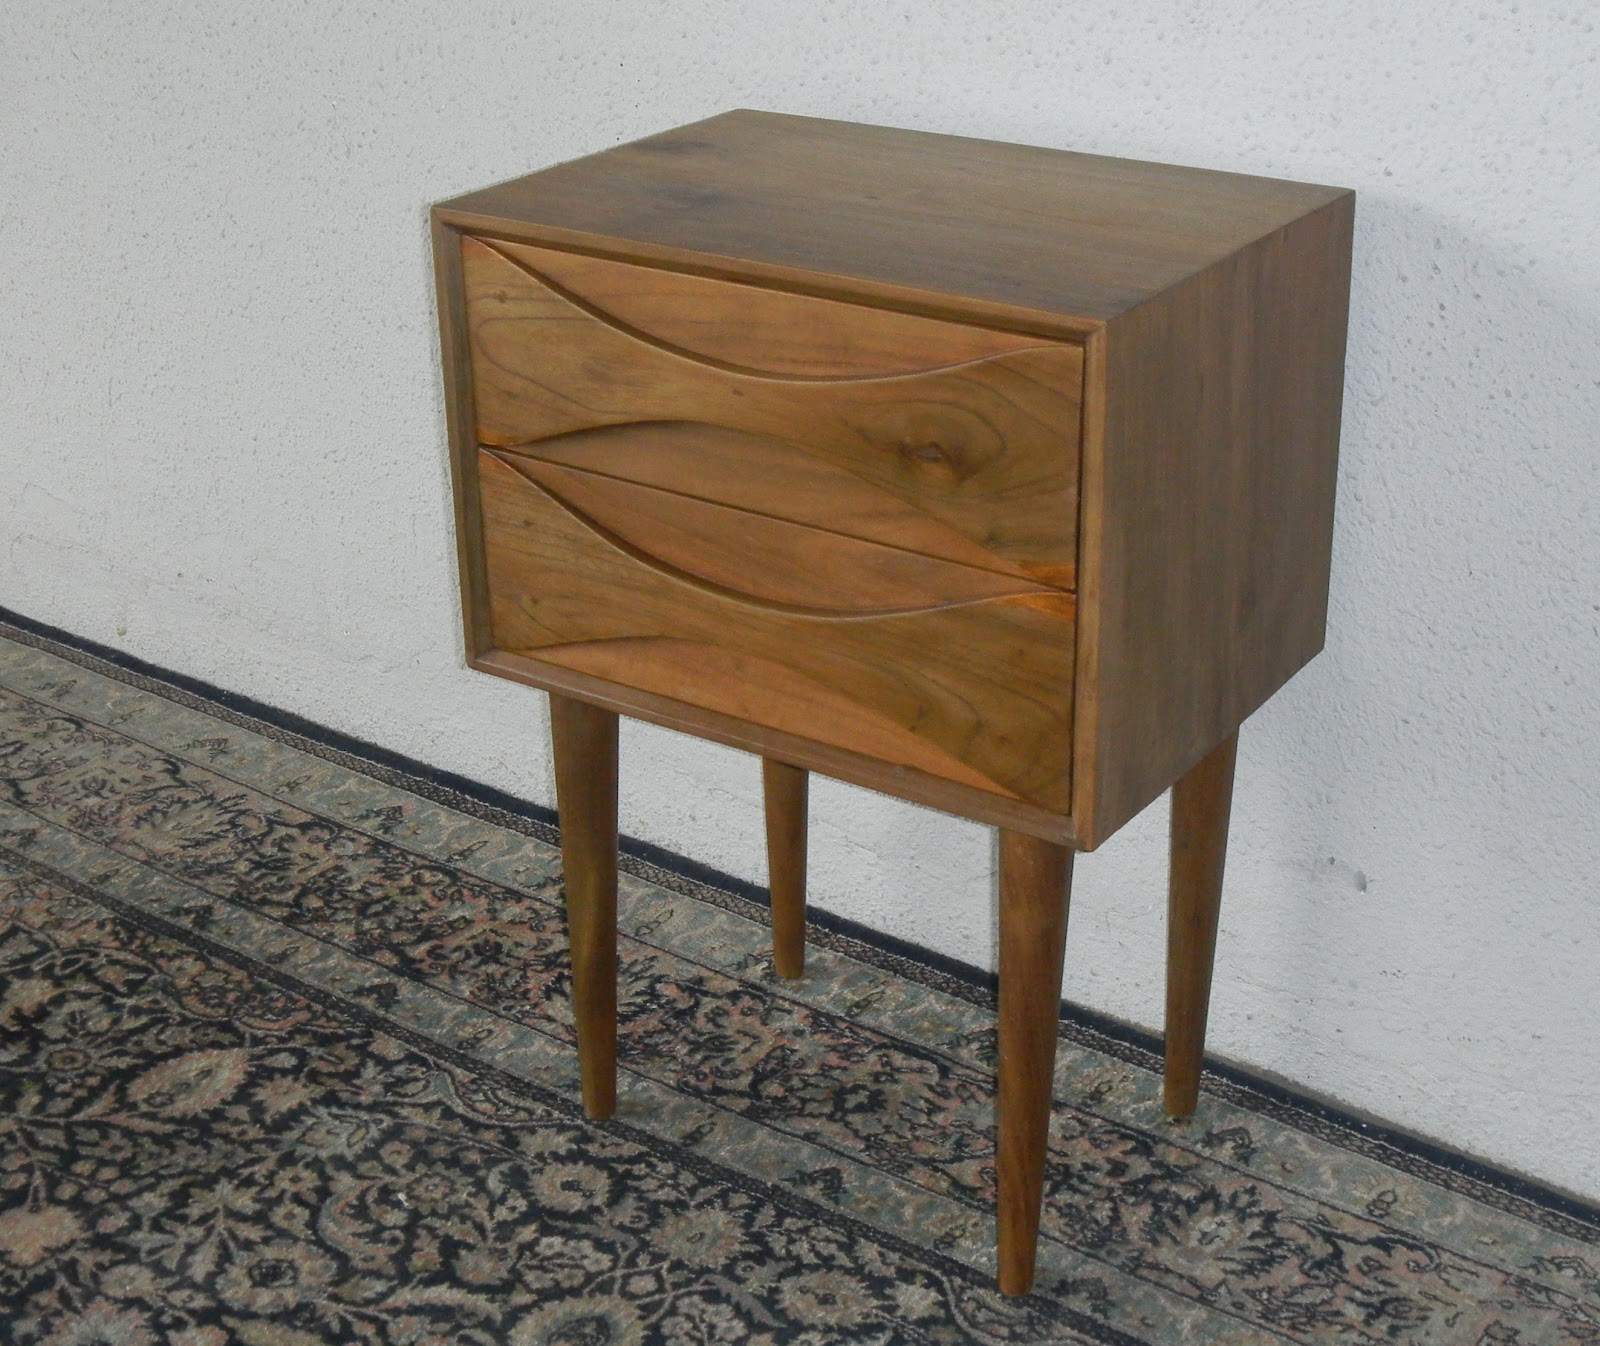 MID CENTURY MODERN BEDSIDE CABINETS   VINTAGE AND FINE REPRODUCTIONS.